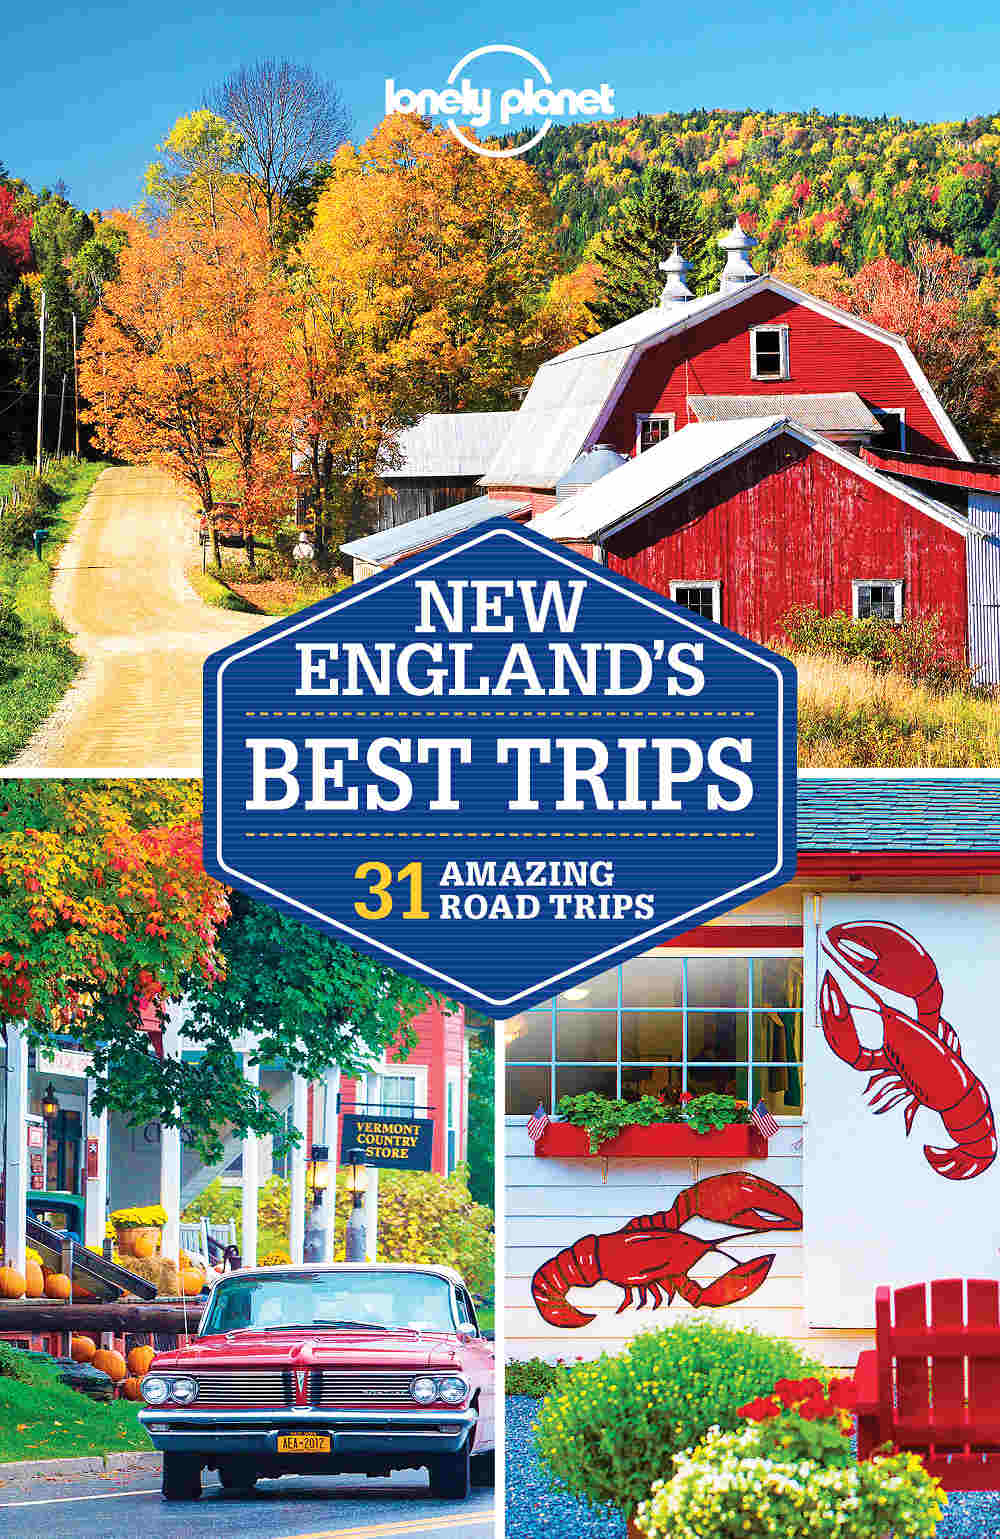 Lonely Planet New England Best Trips 3.